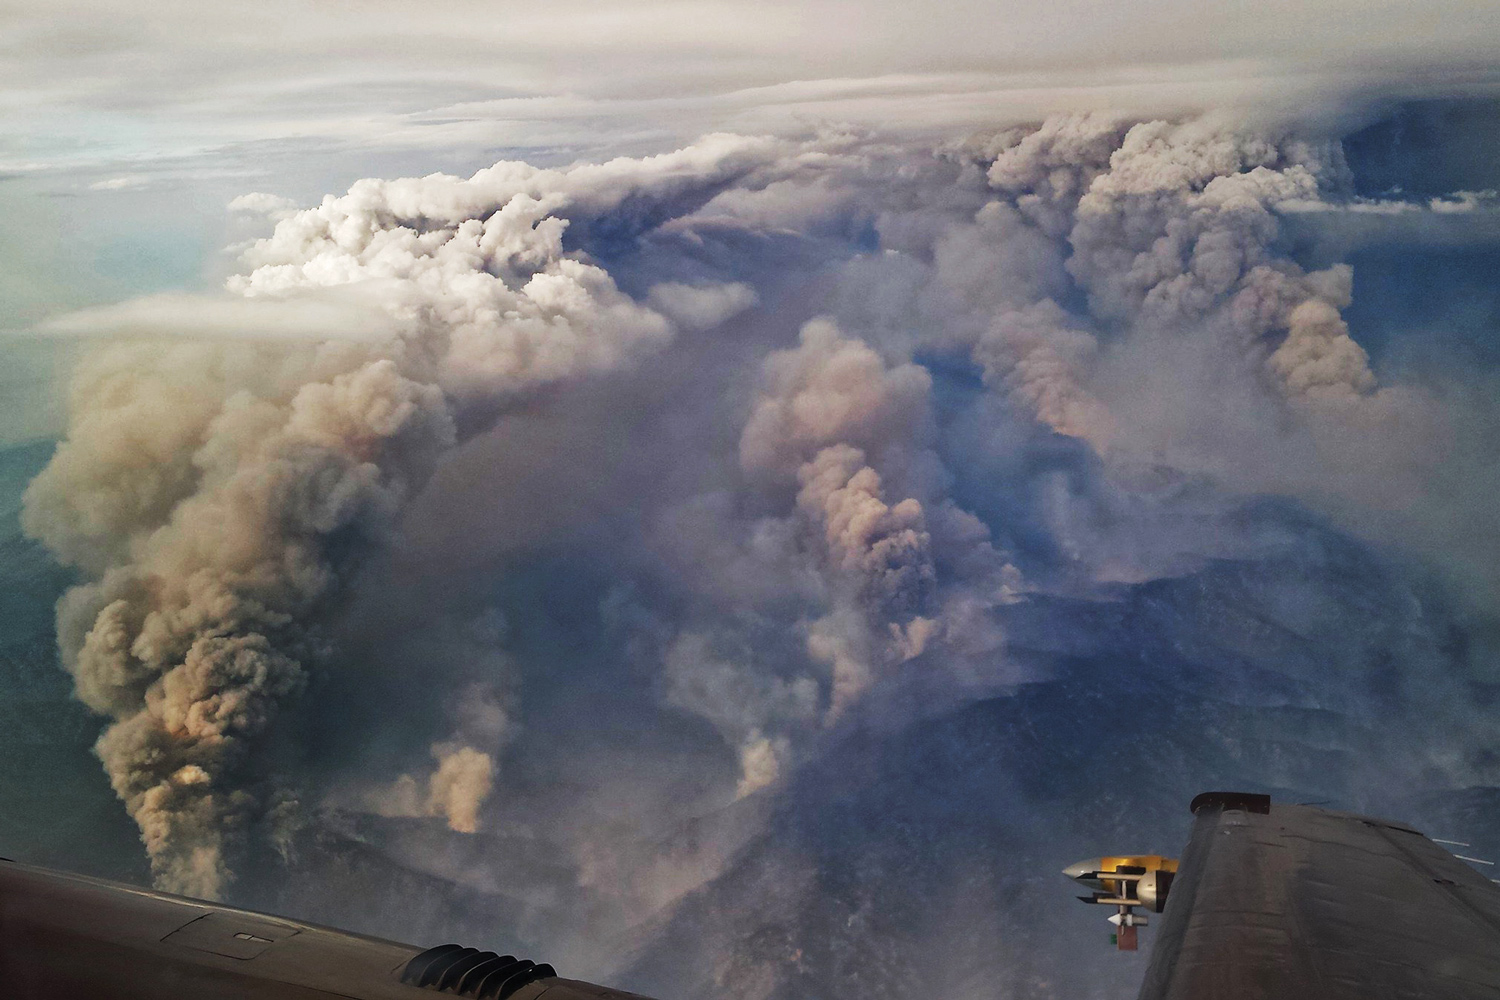 The 2016 pioneer fire as seen from the university of wyoming king air research aircraft during the radfire campaign